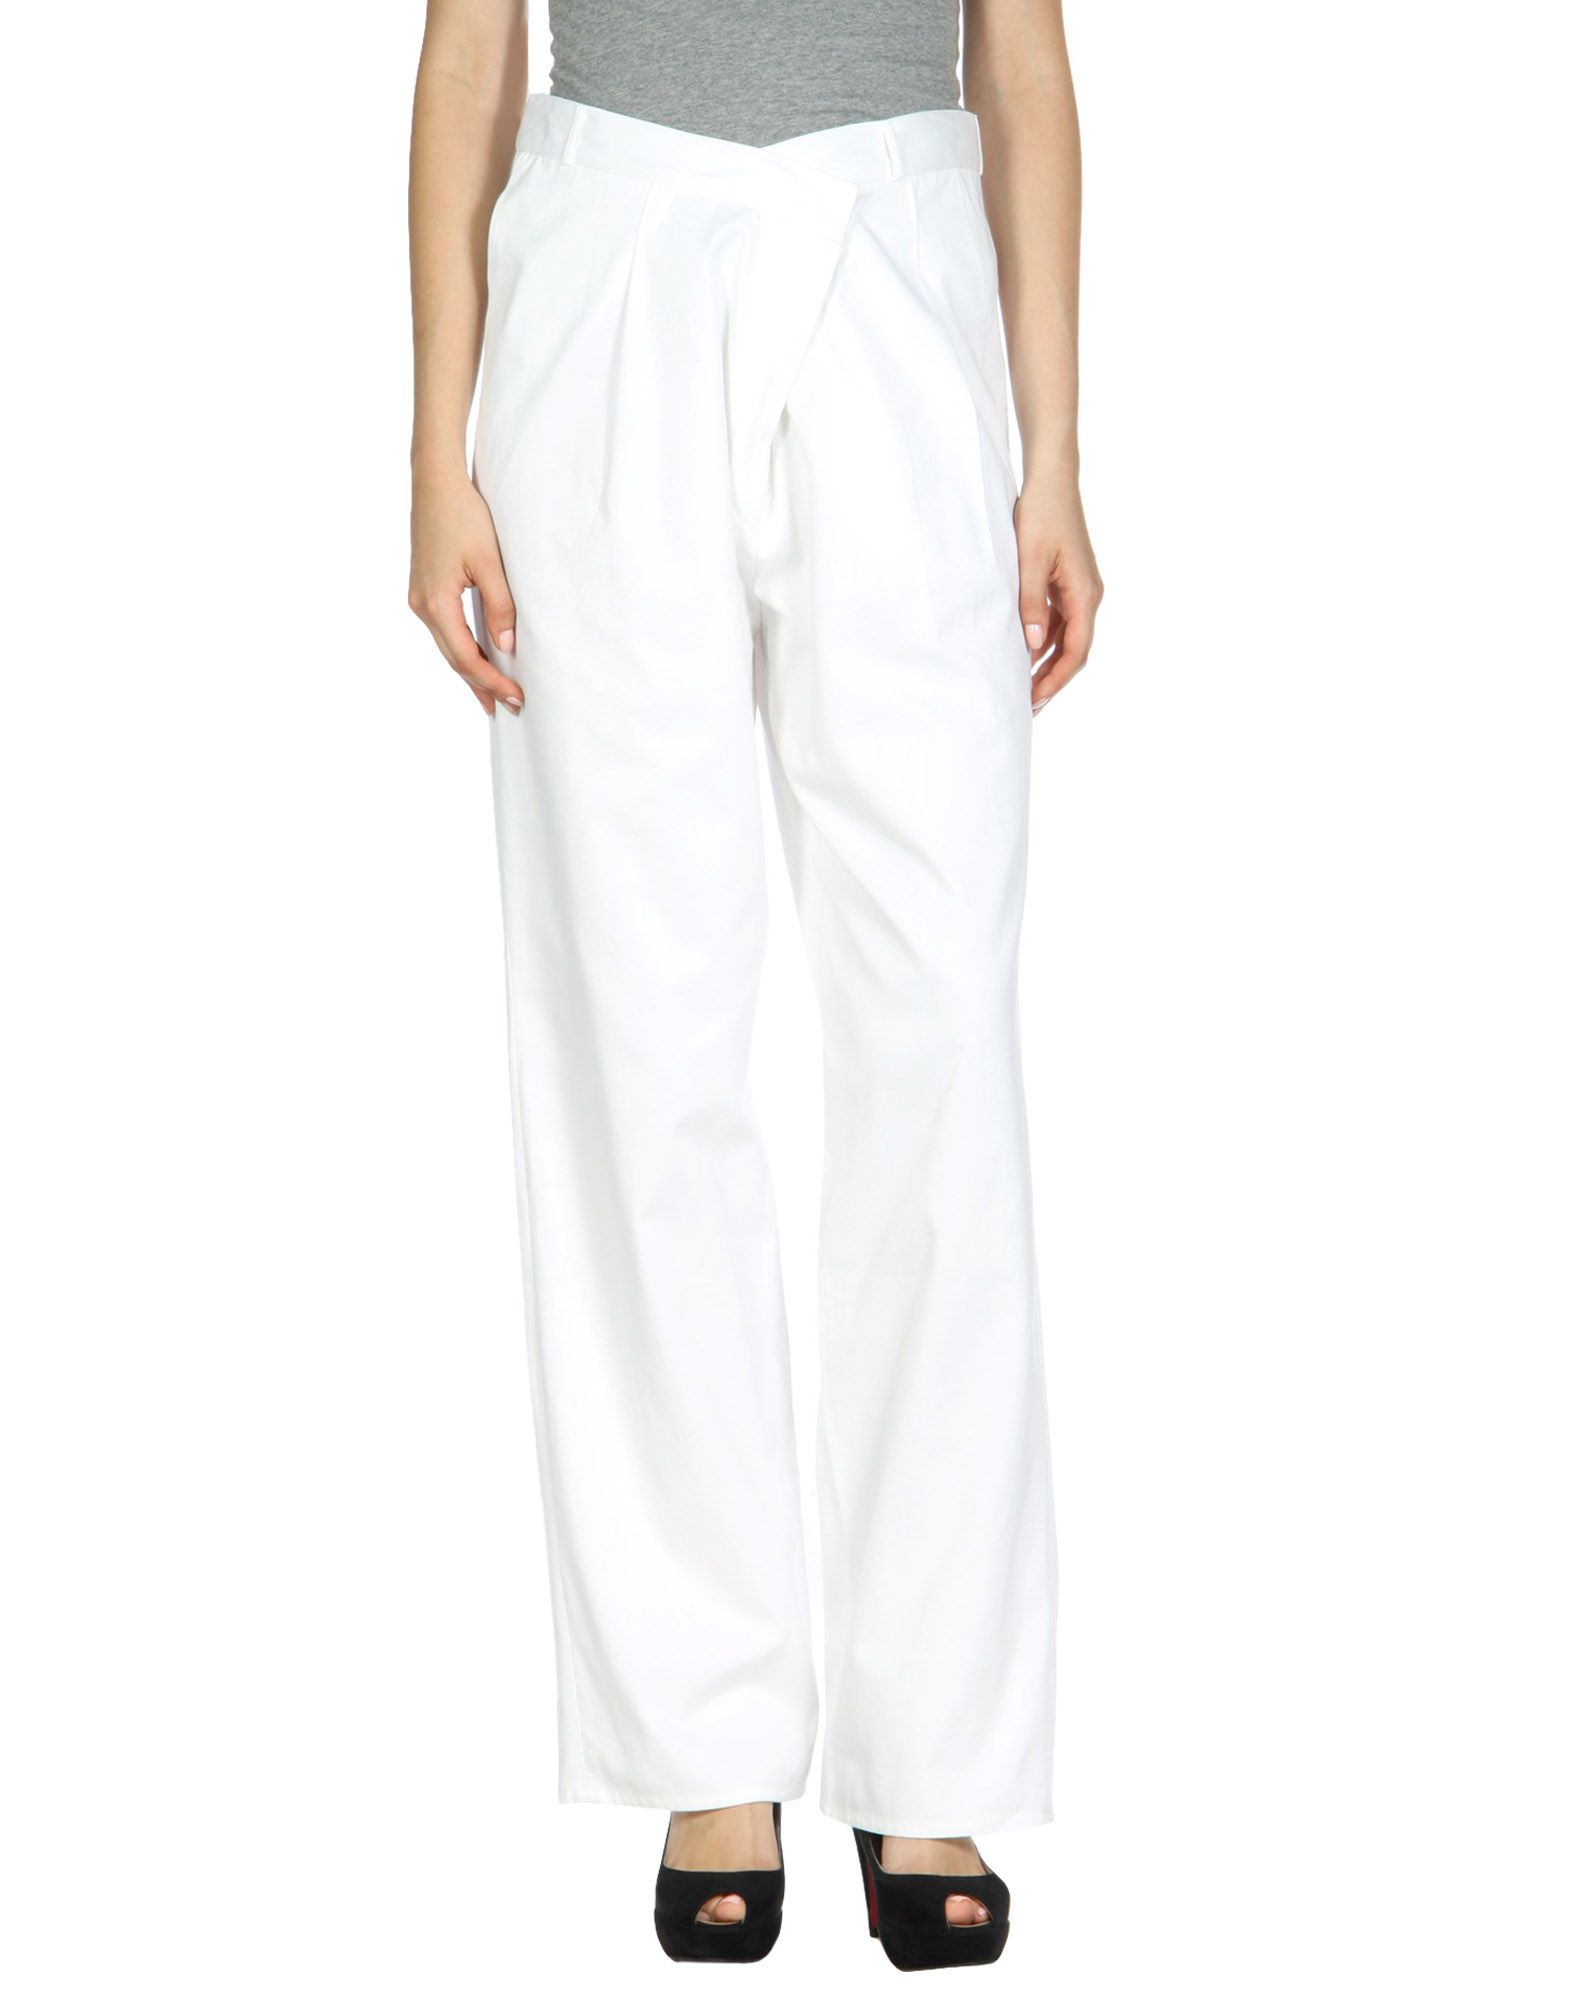 BACK Casual Pants in White